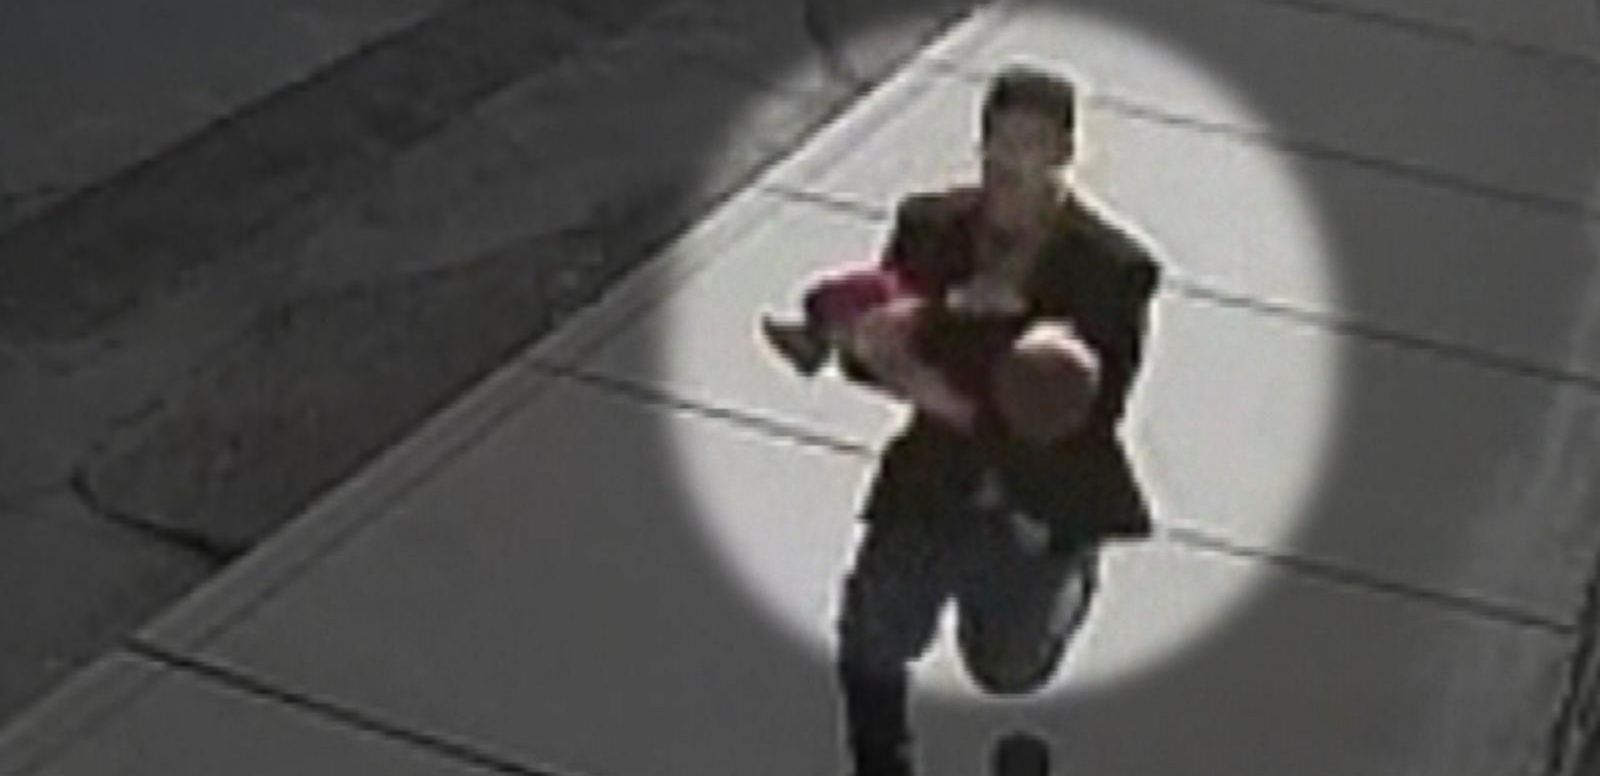 VIDEO: Washington Kids Stopping Abduction Caught on Video